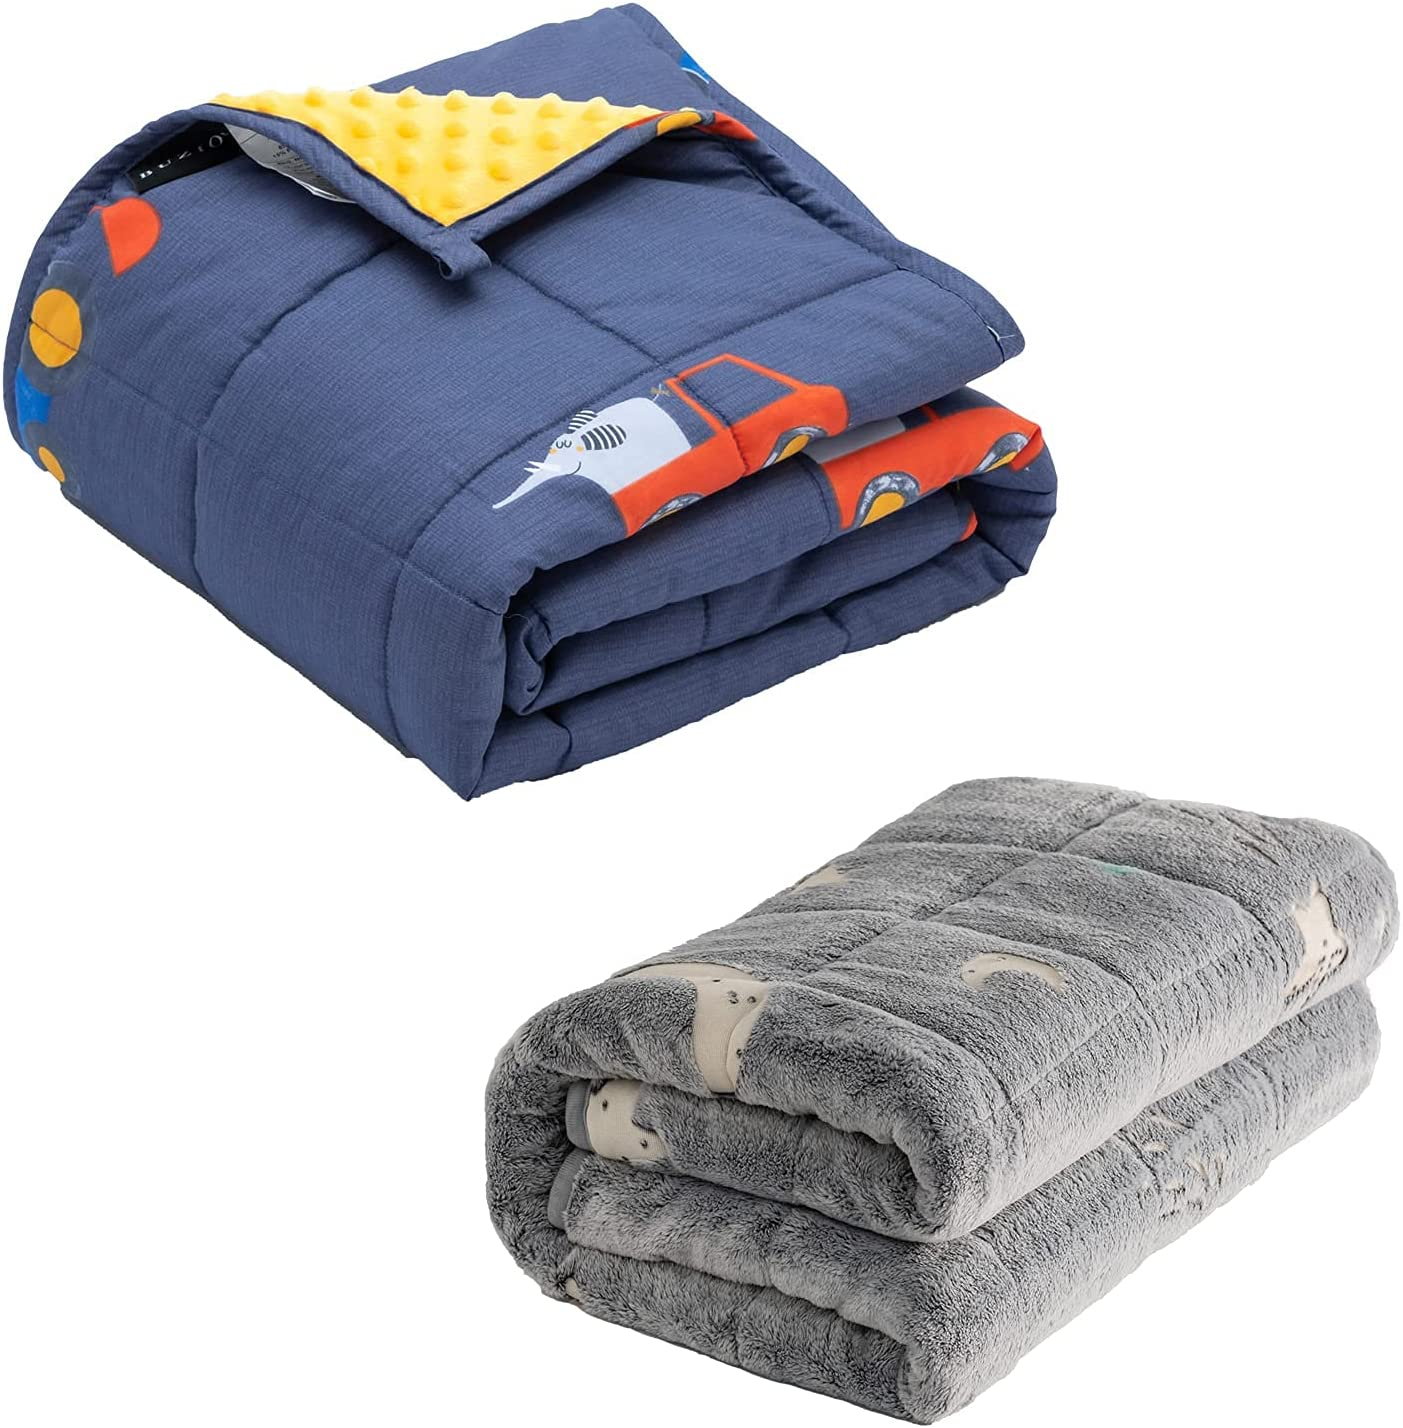 Kids Manufacturer direct delivery Weighted Blanket 5 lbs Cozy Fleece Ranking TOP2 with Minky Cotton Sided